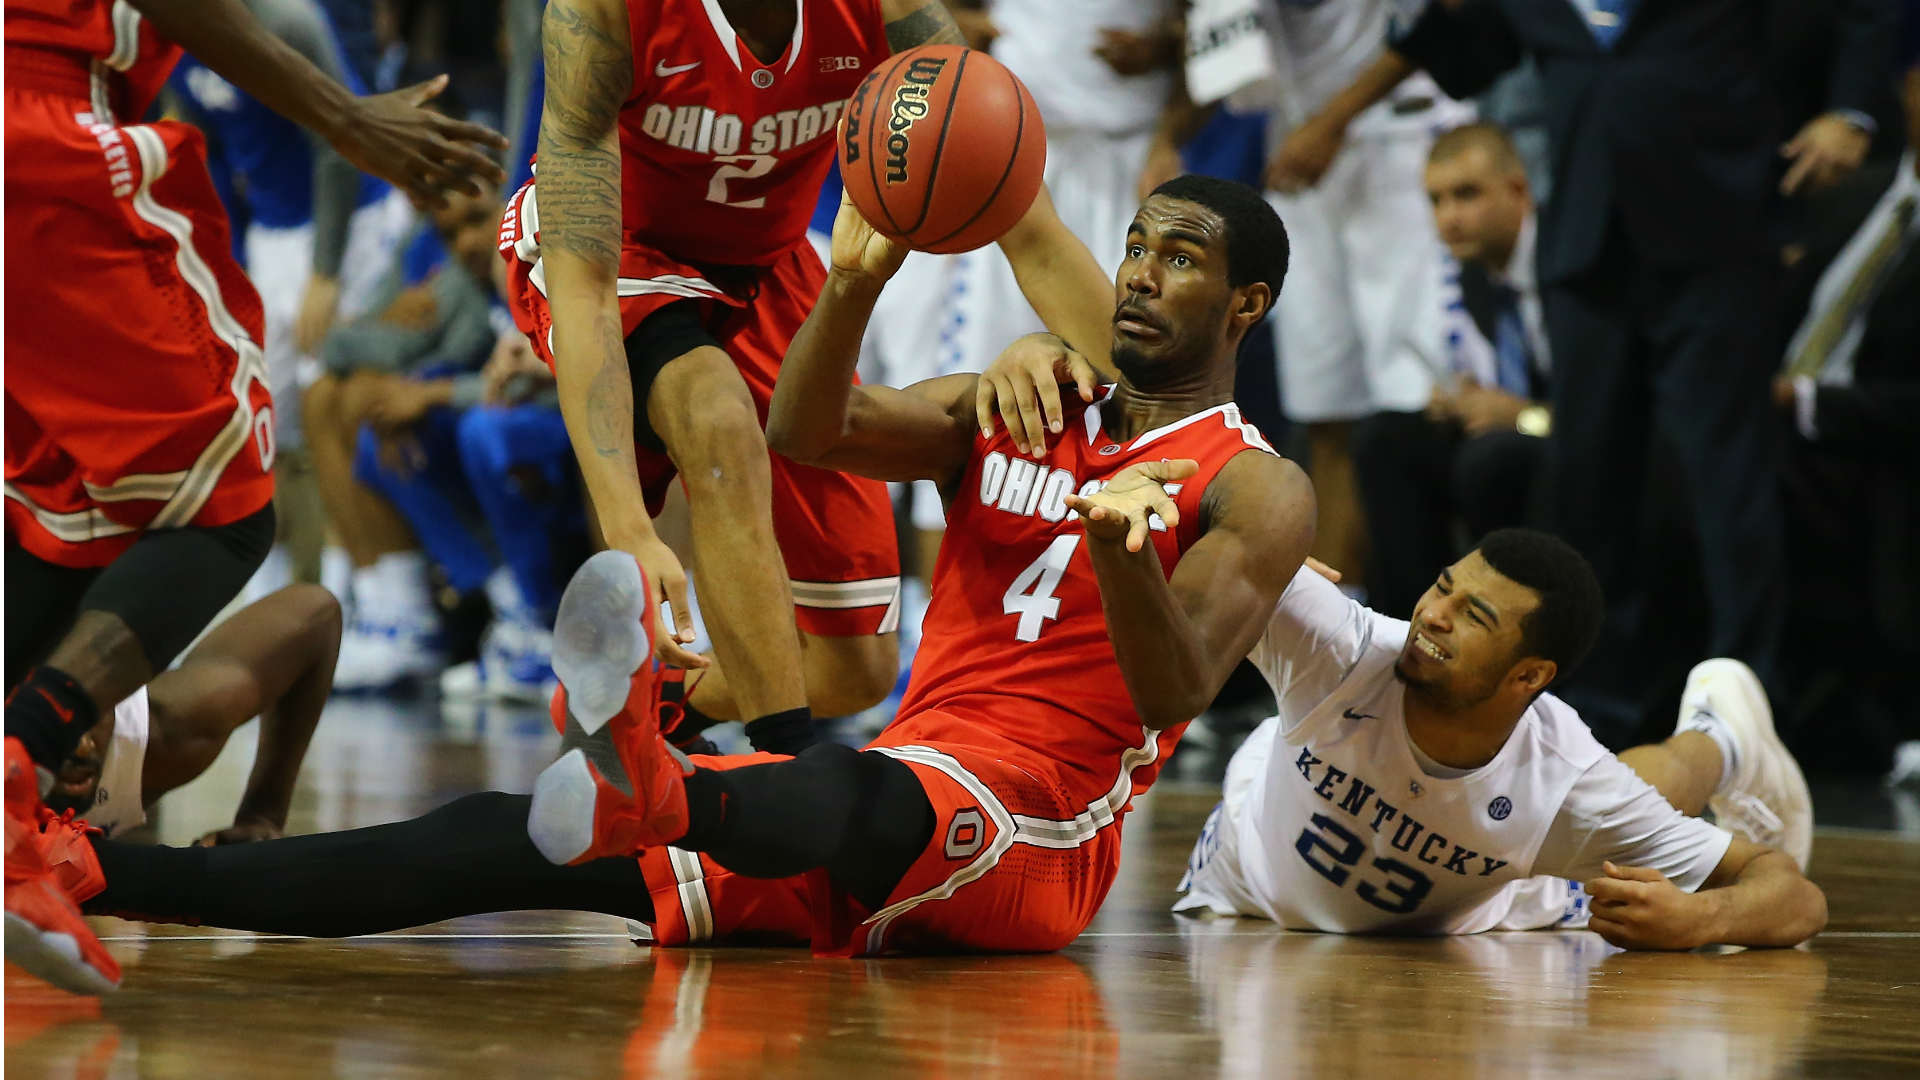 osu-kentucky-12192015-us-news-getty-ftr